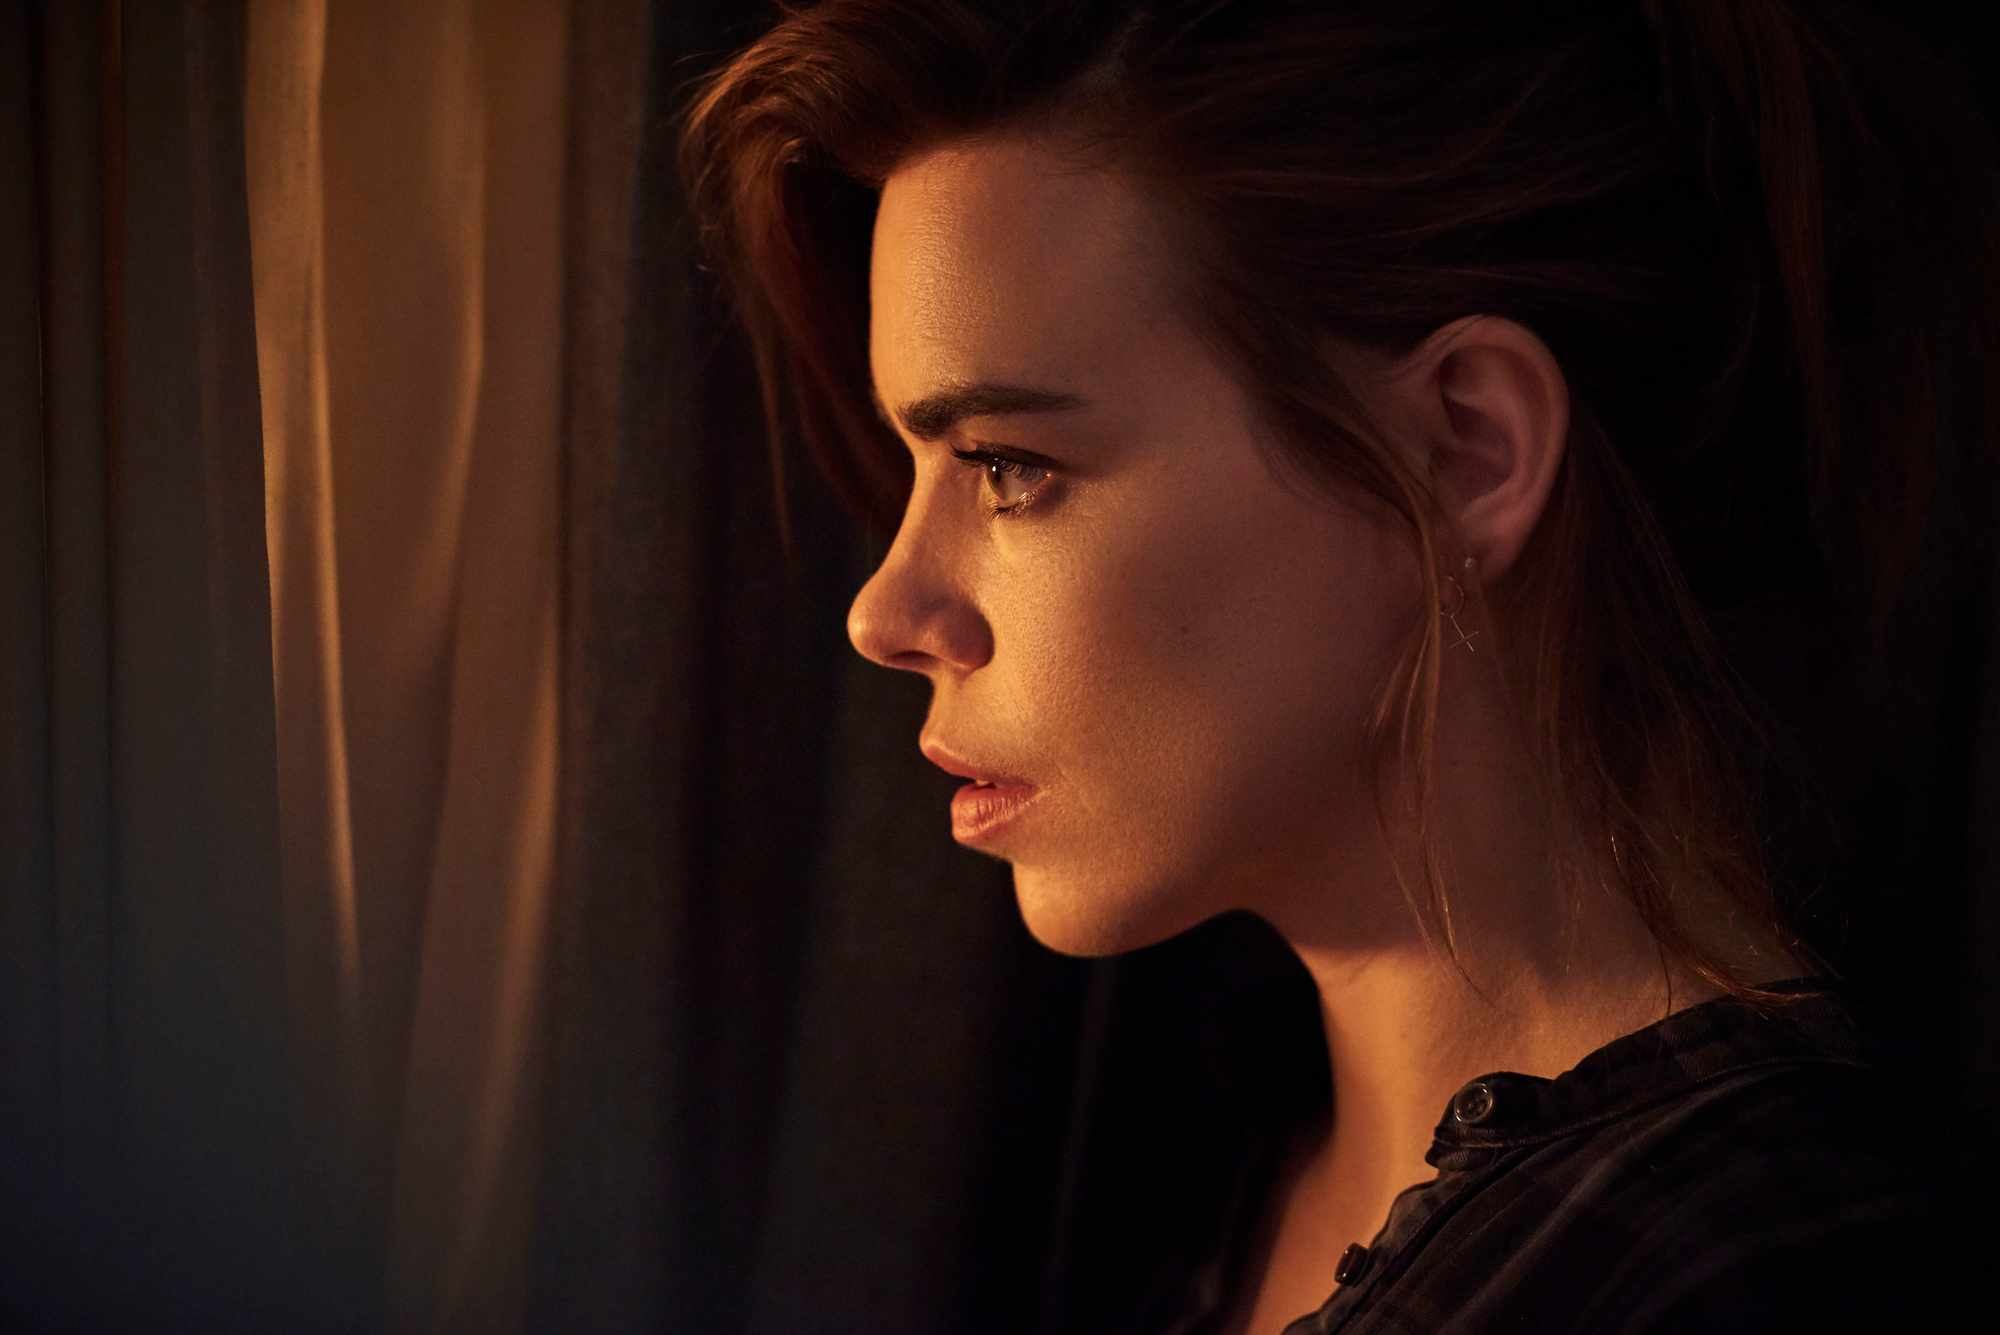 Collateral - Billie Piper as Karen Mars